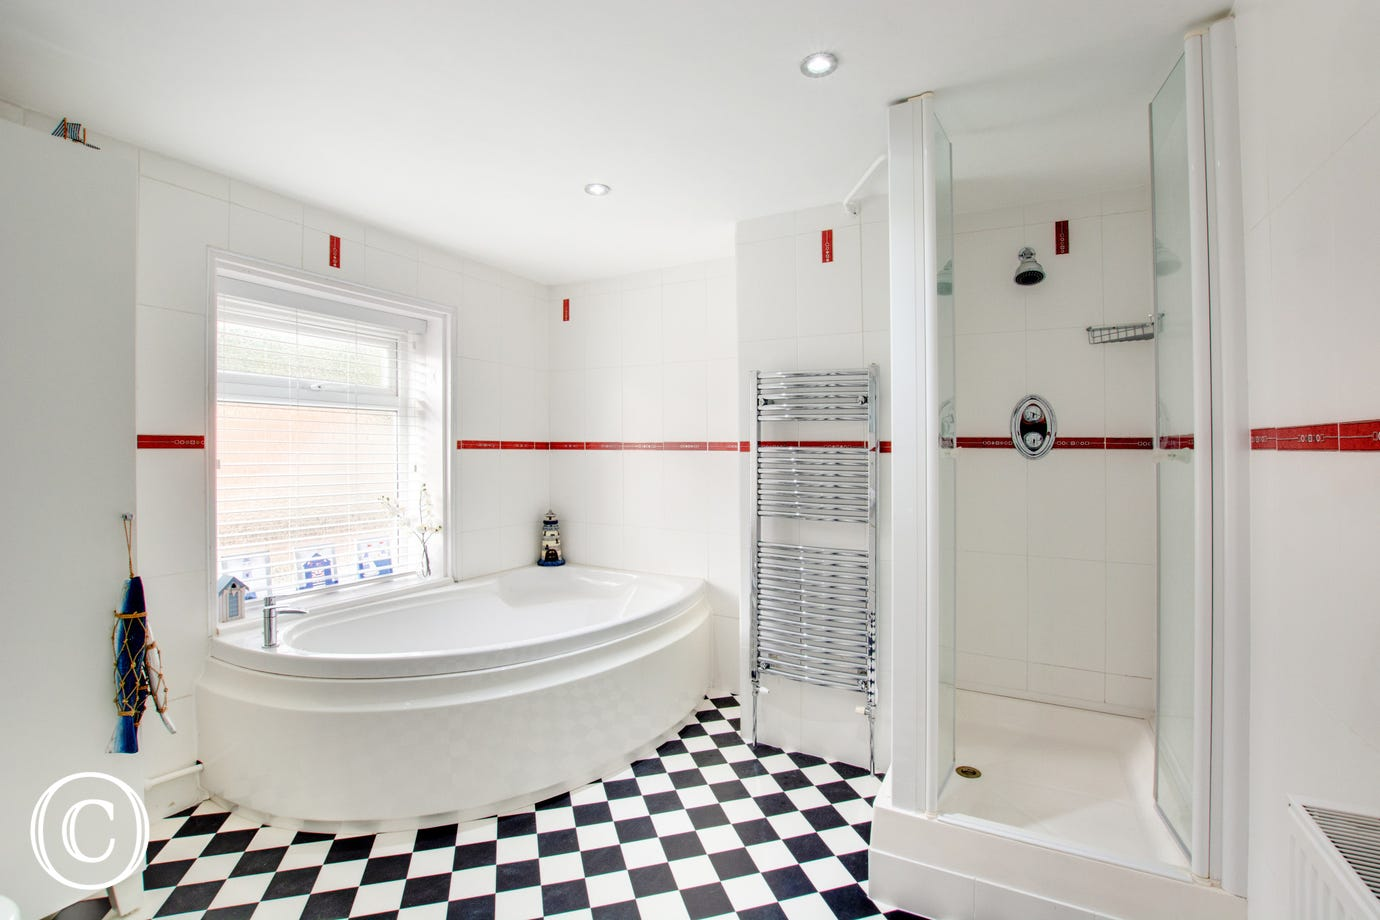 Bathroom with corner bath and shower cubicle